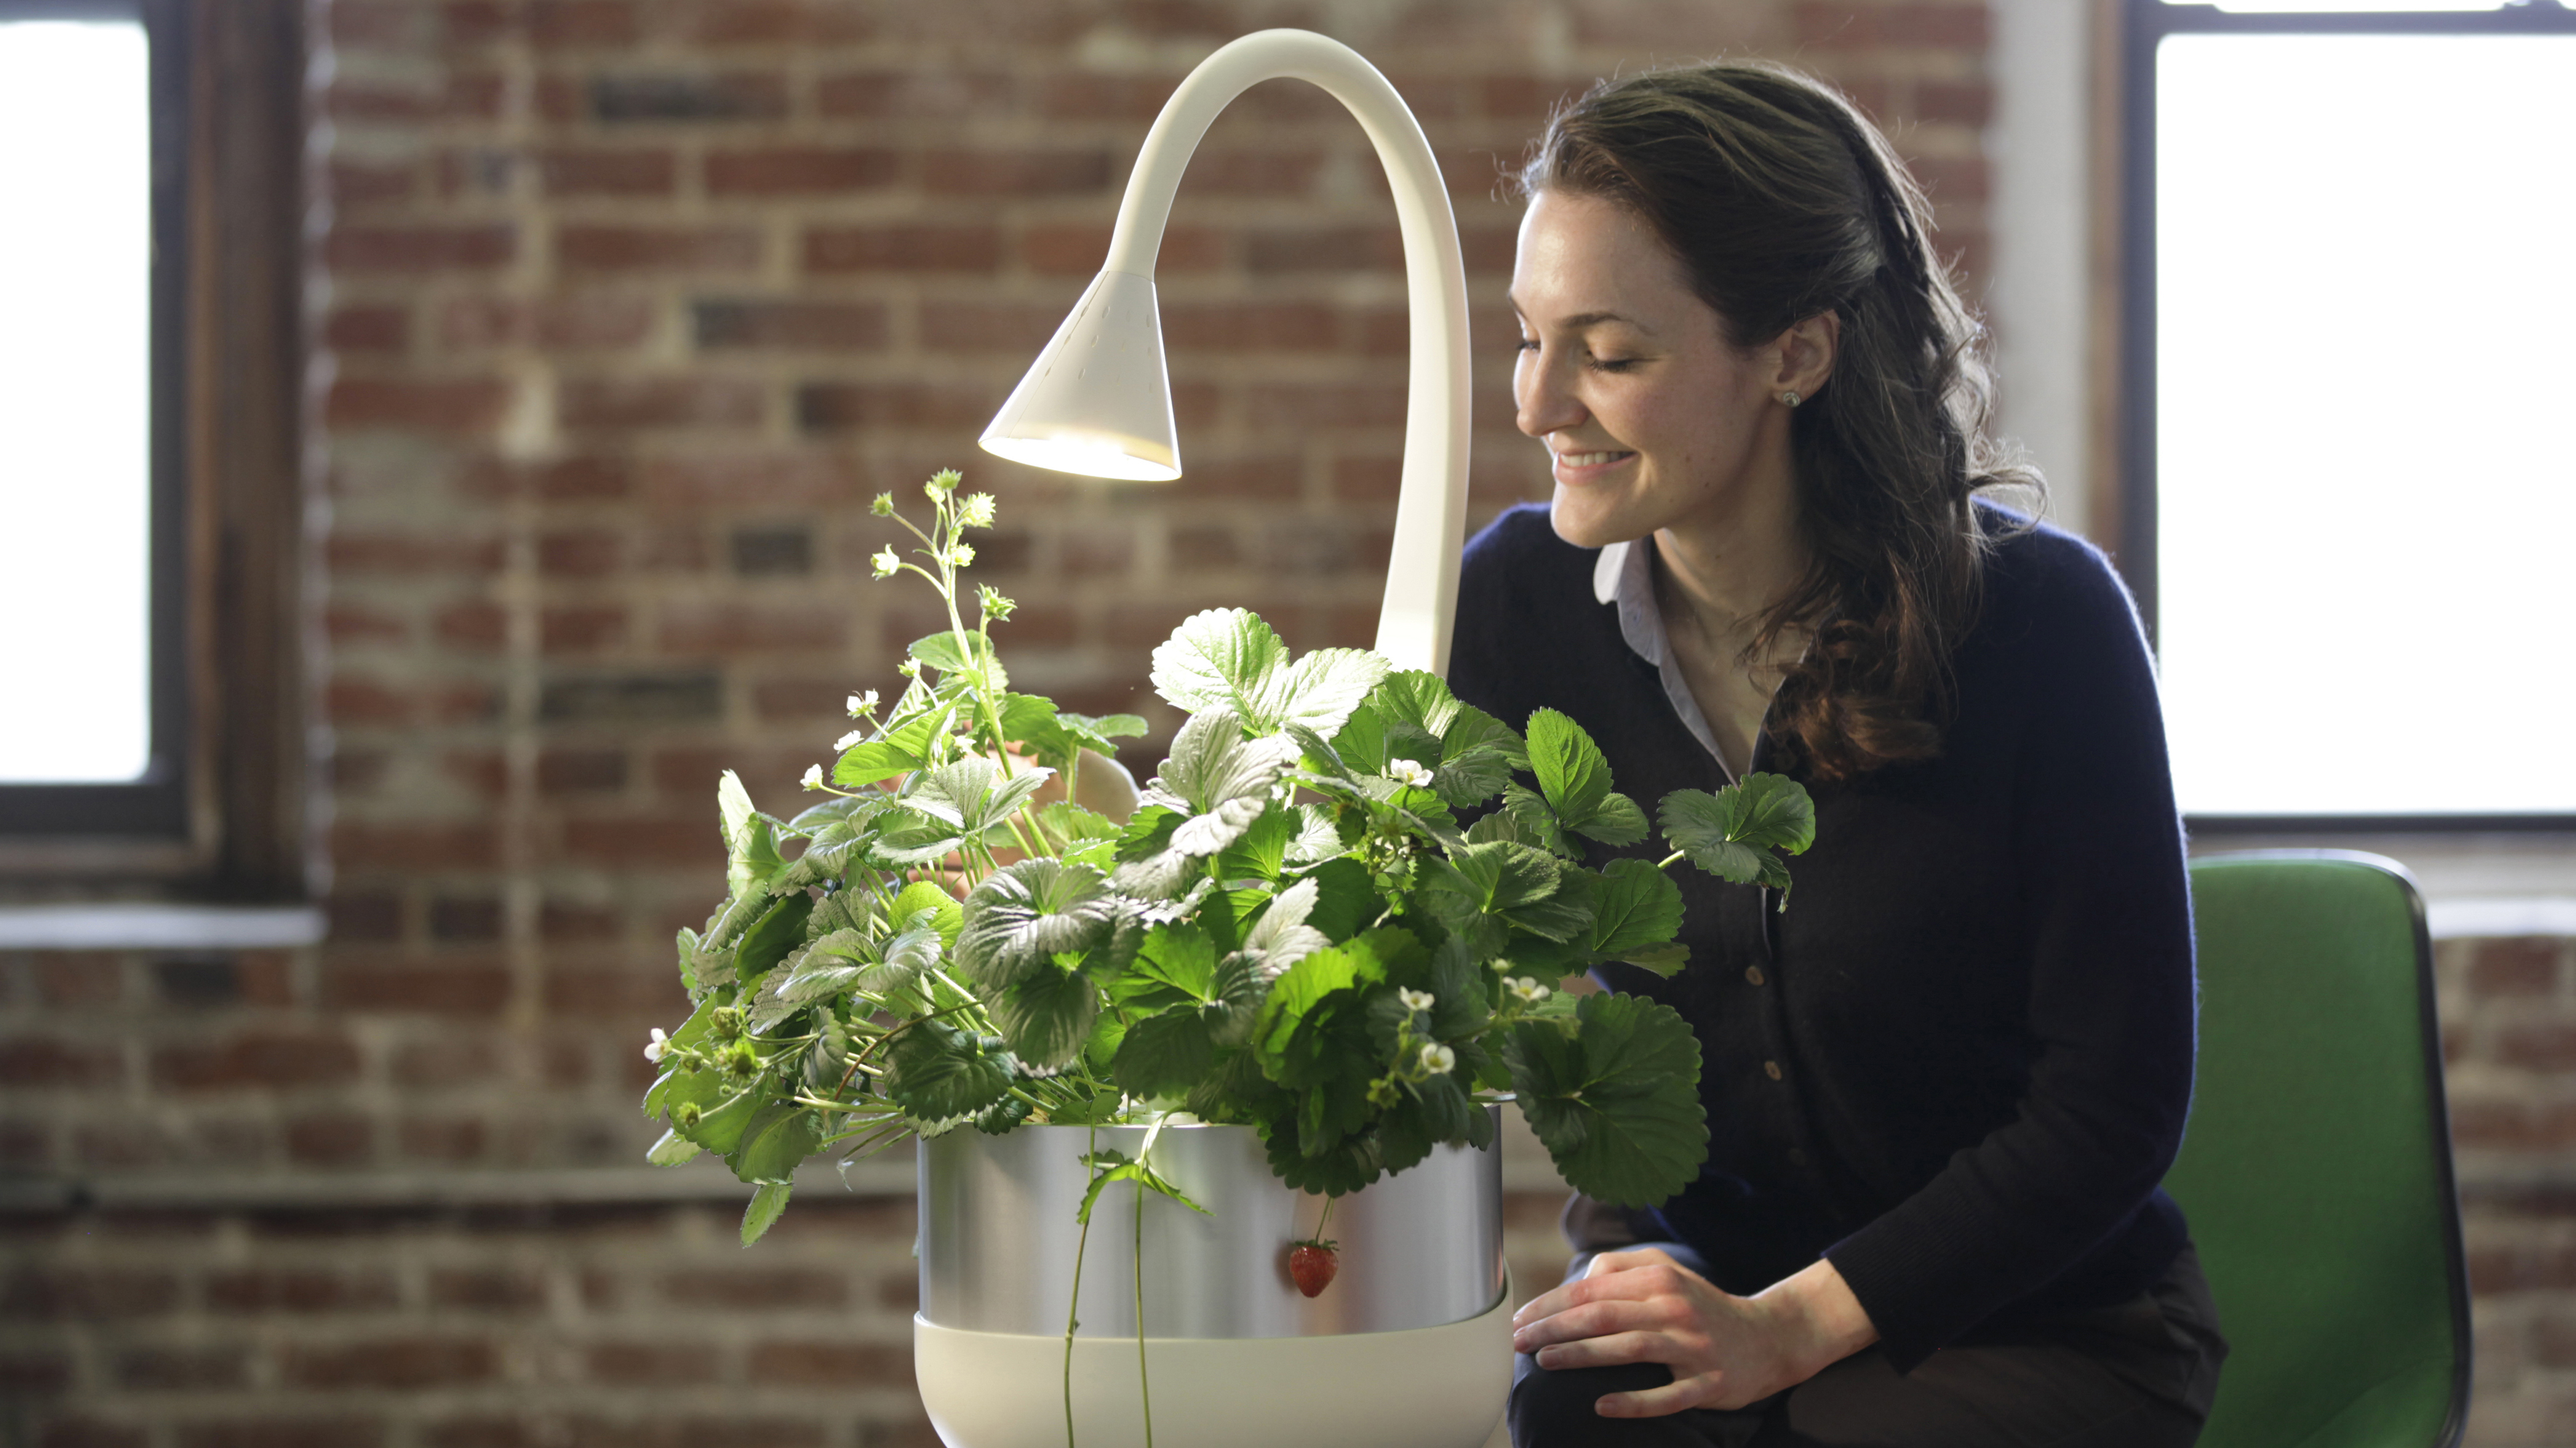 A User-Friendly Gardening System For The Plant-Challenged